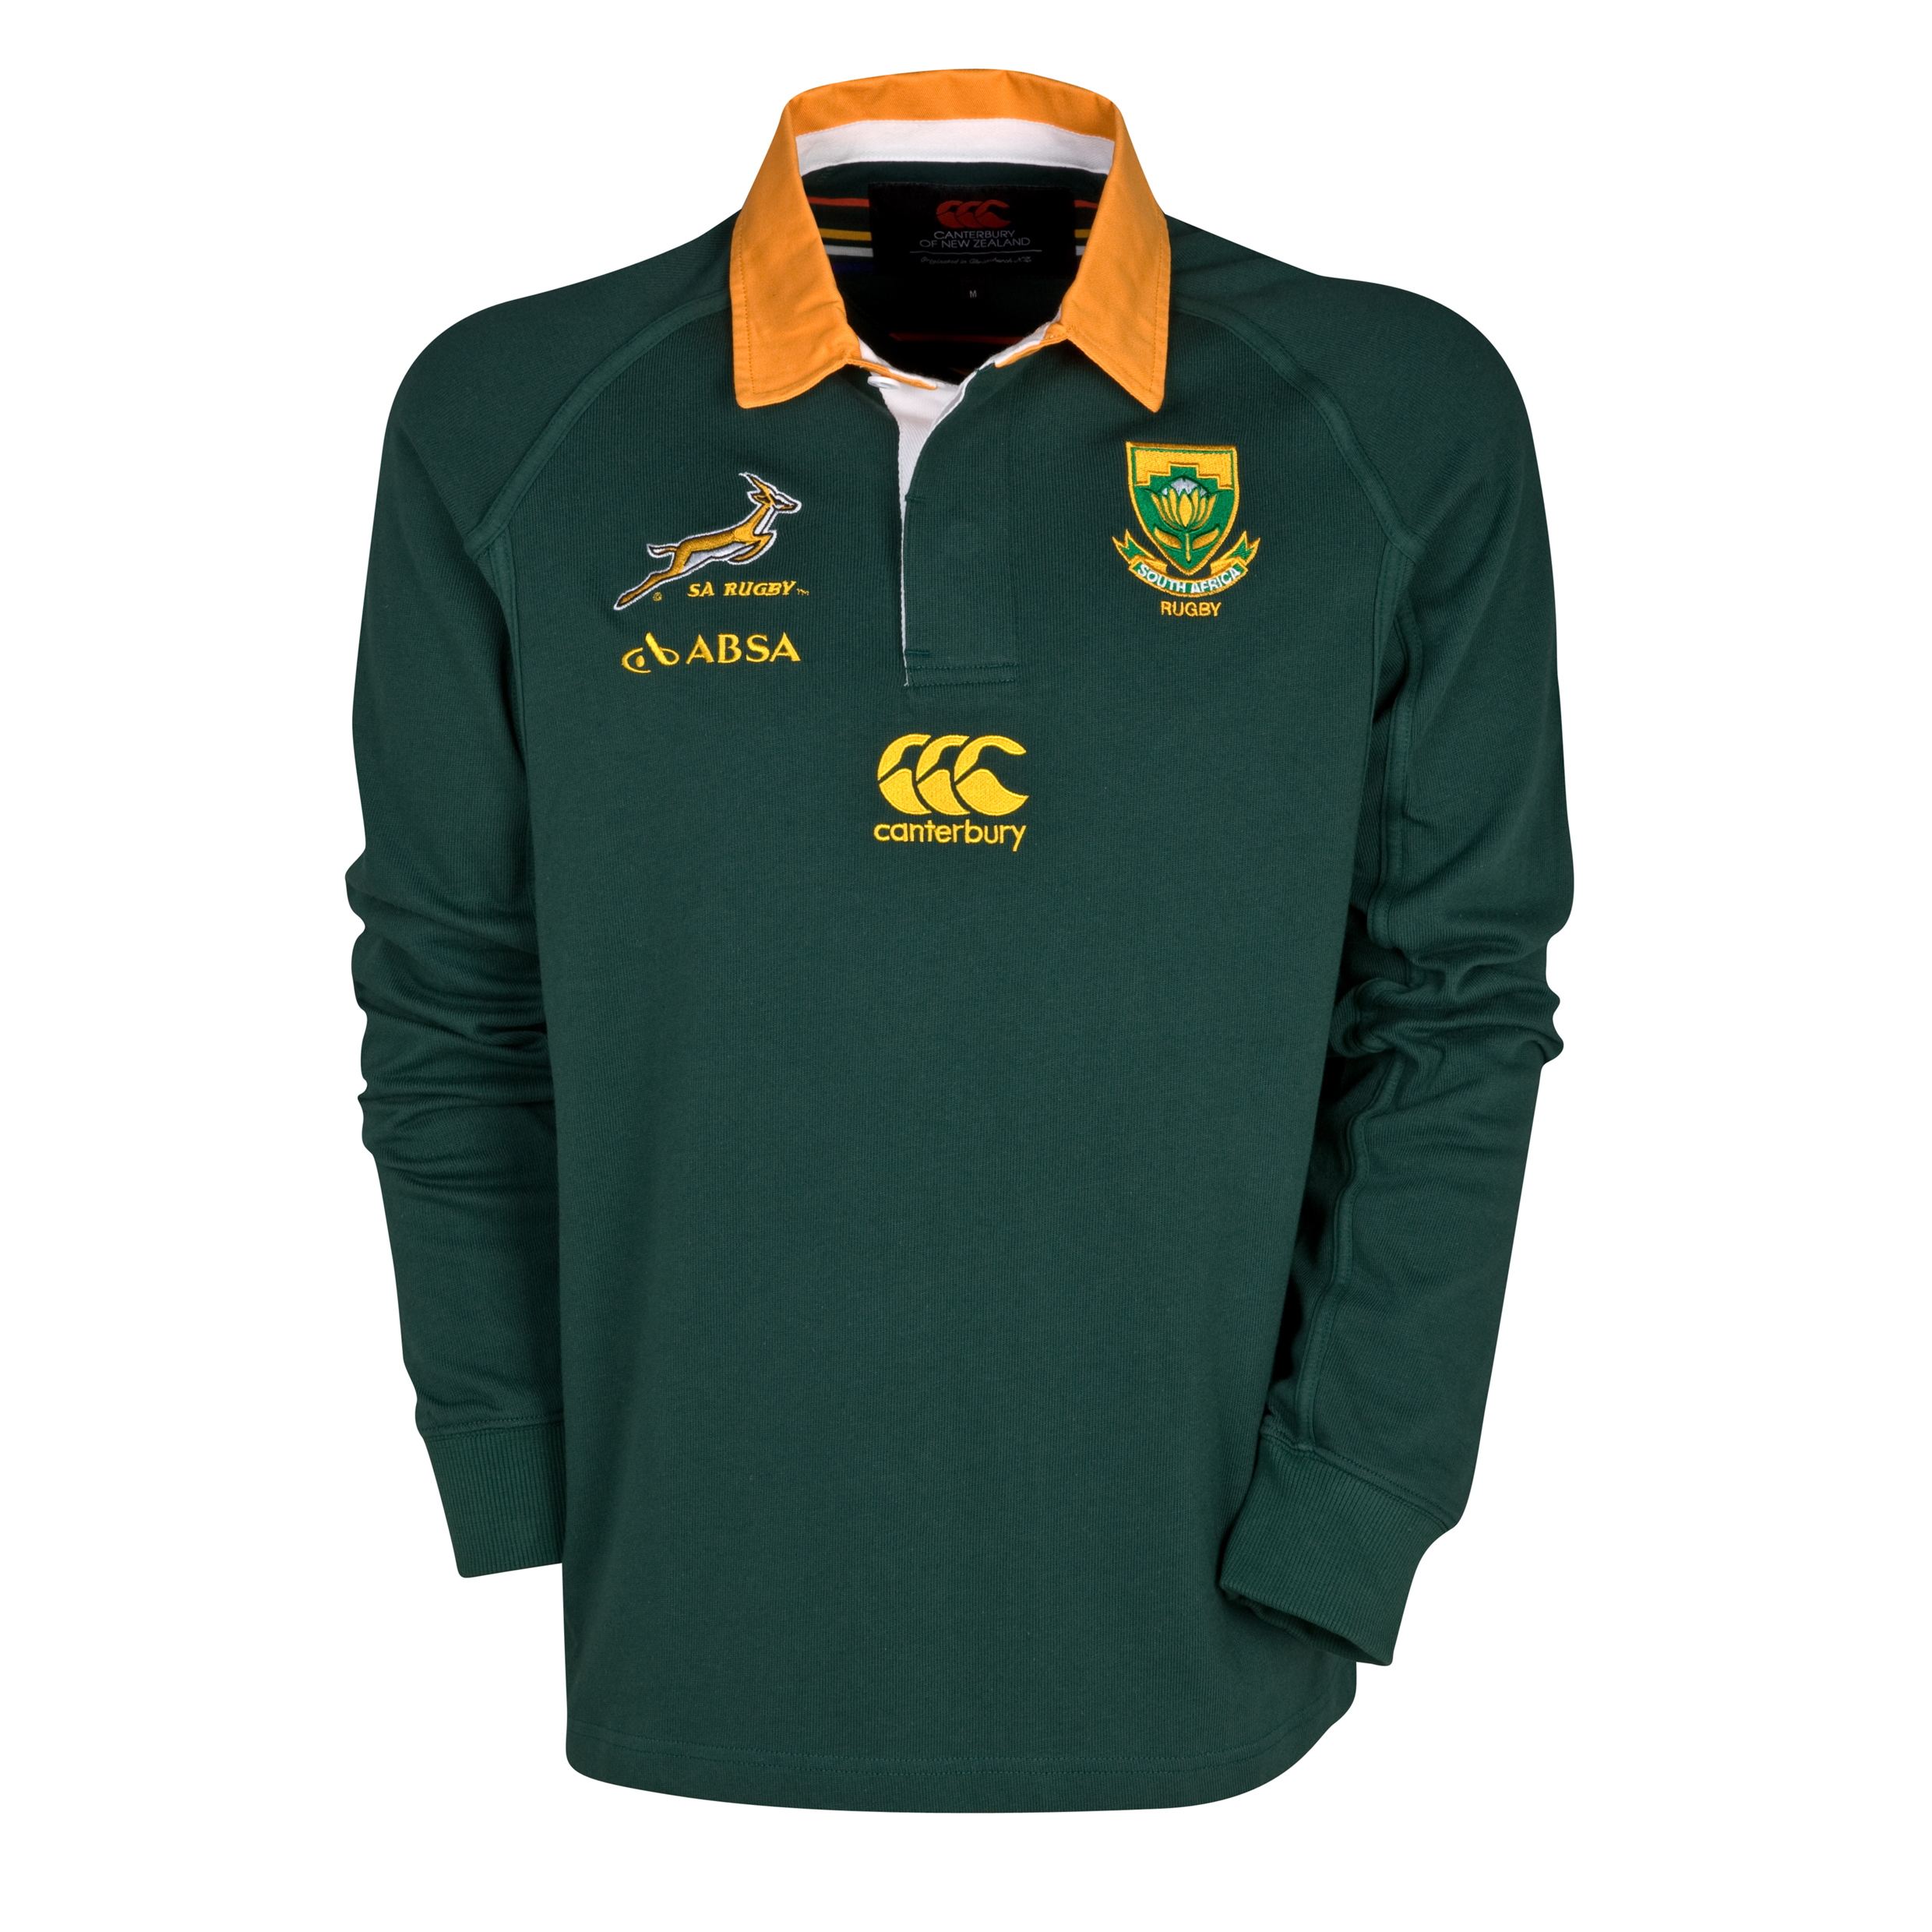 Springboks Home Classic Shirt 2011/13 - Long Sleeved